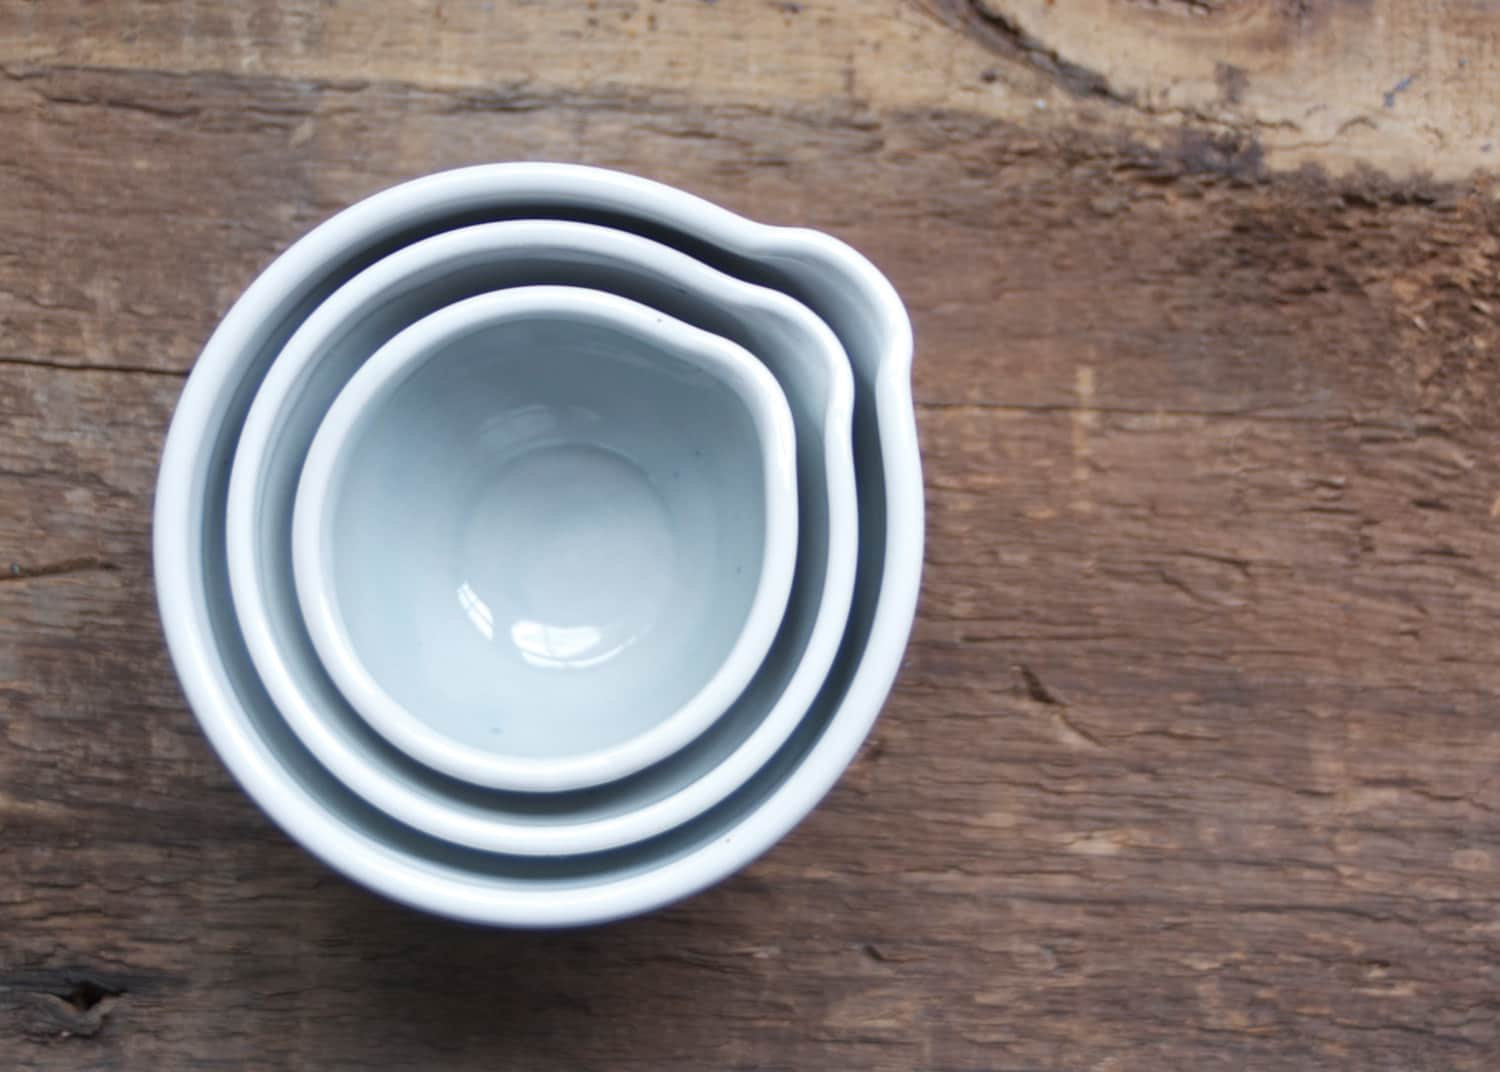 Center Ceramics: Gorgeous Handmade Ceramic Wares for the Table: gallery image 3